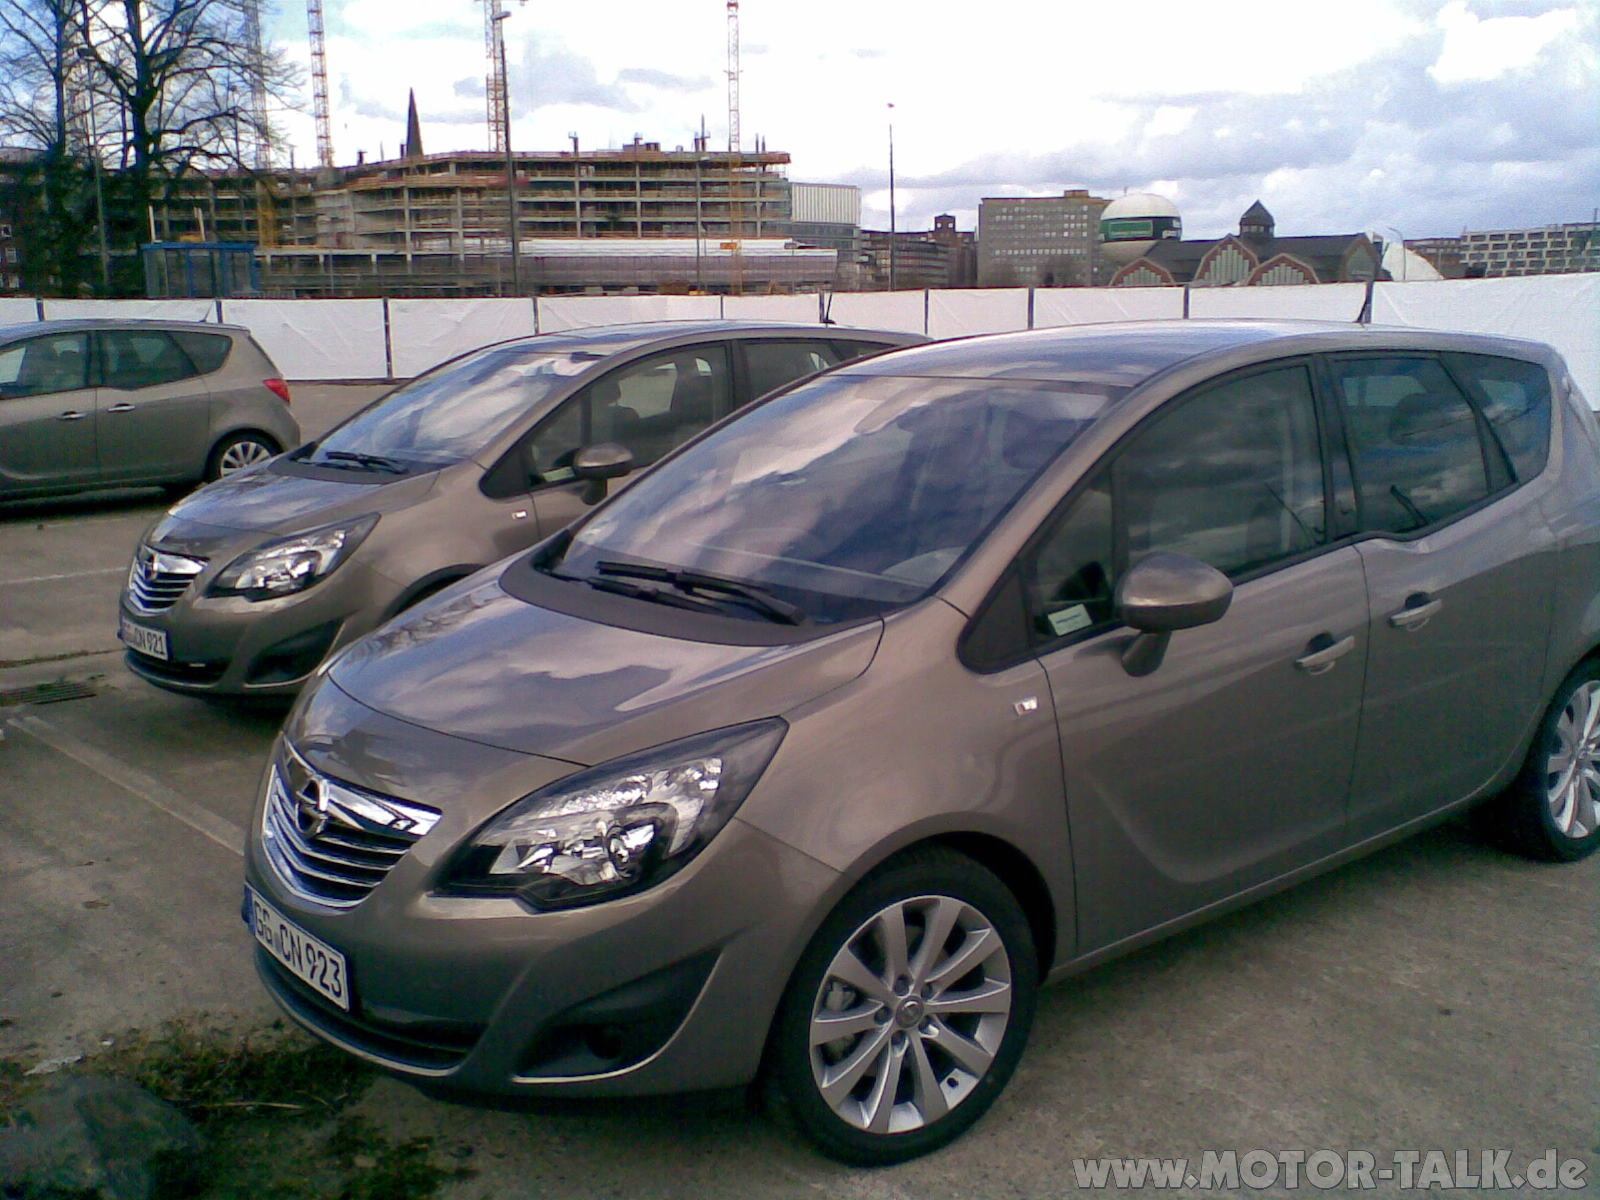 opel meriva 2010 14 bilder meriva 09 m rz 2010 in hh europa h ndler premiere opel meriva b. Black Bedroom Furniture Sets. Home Design Ideas